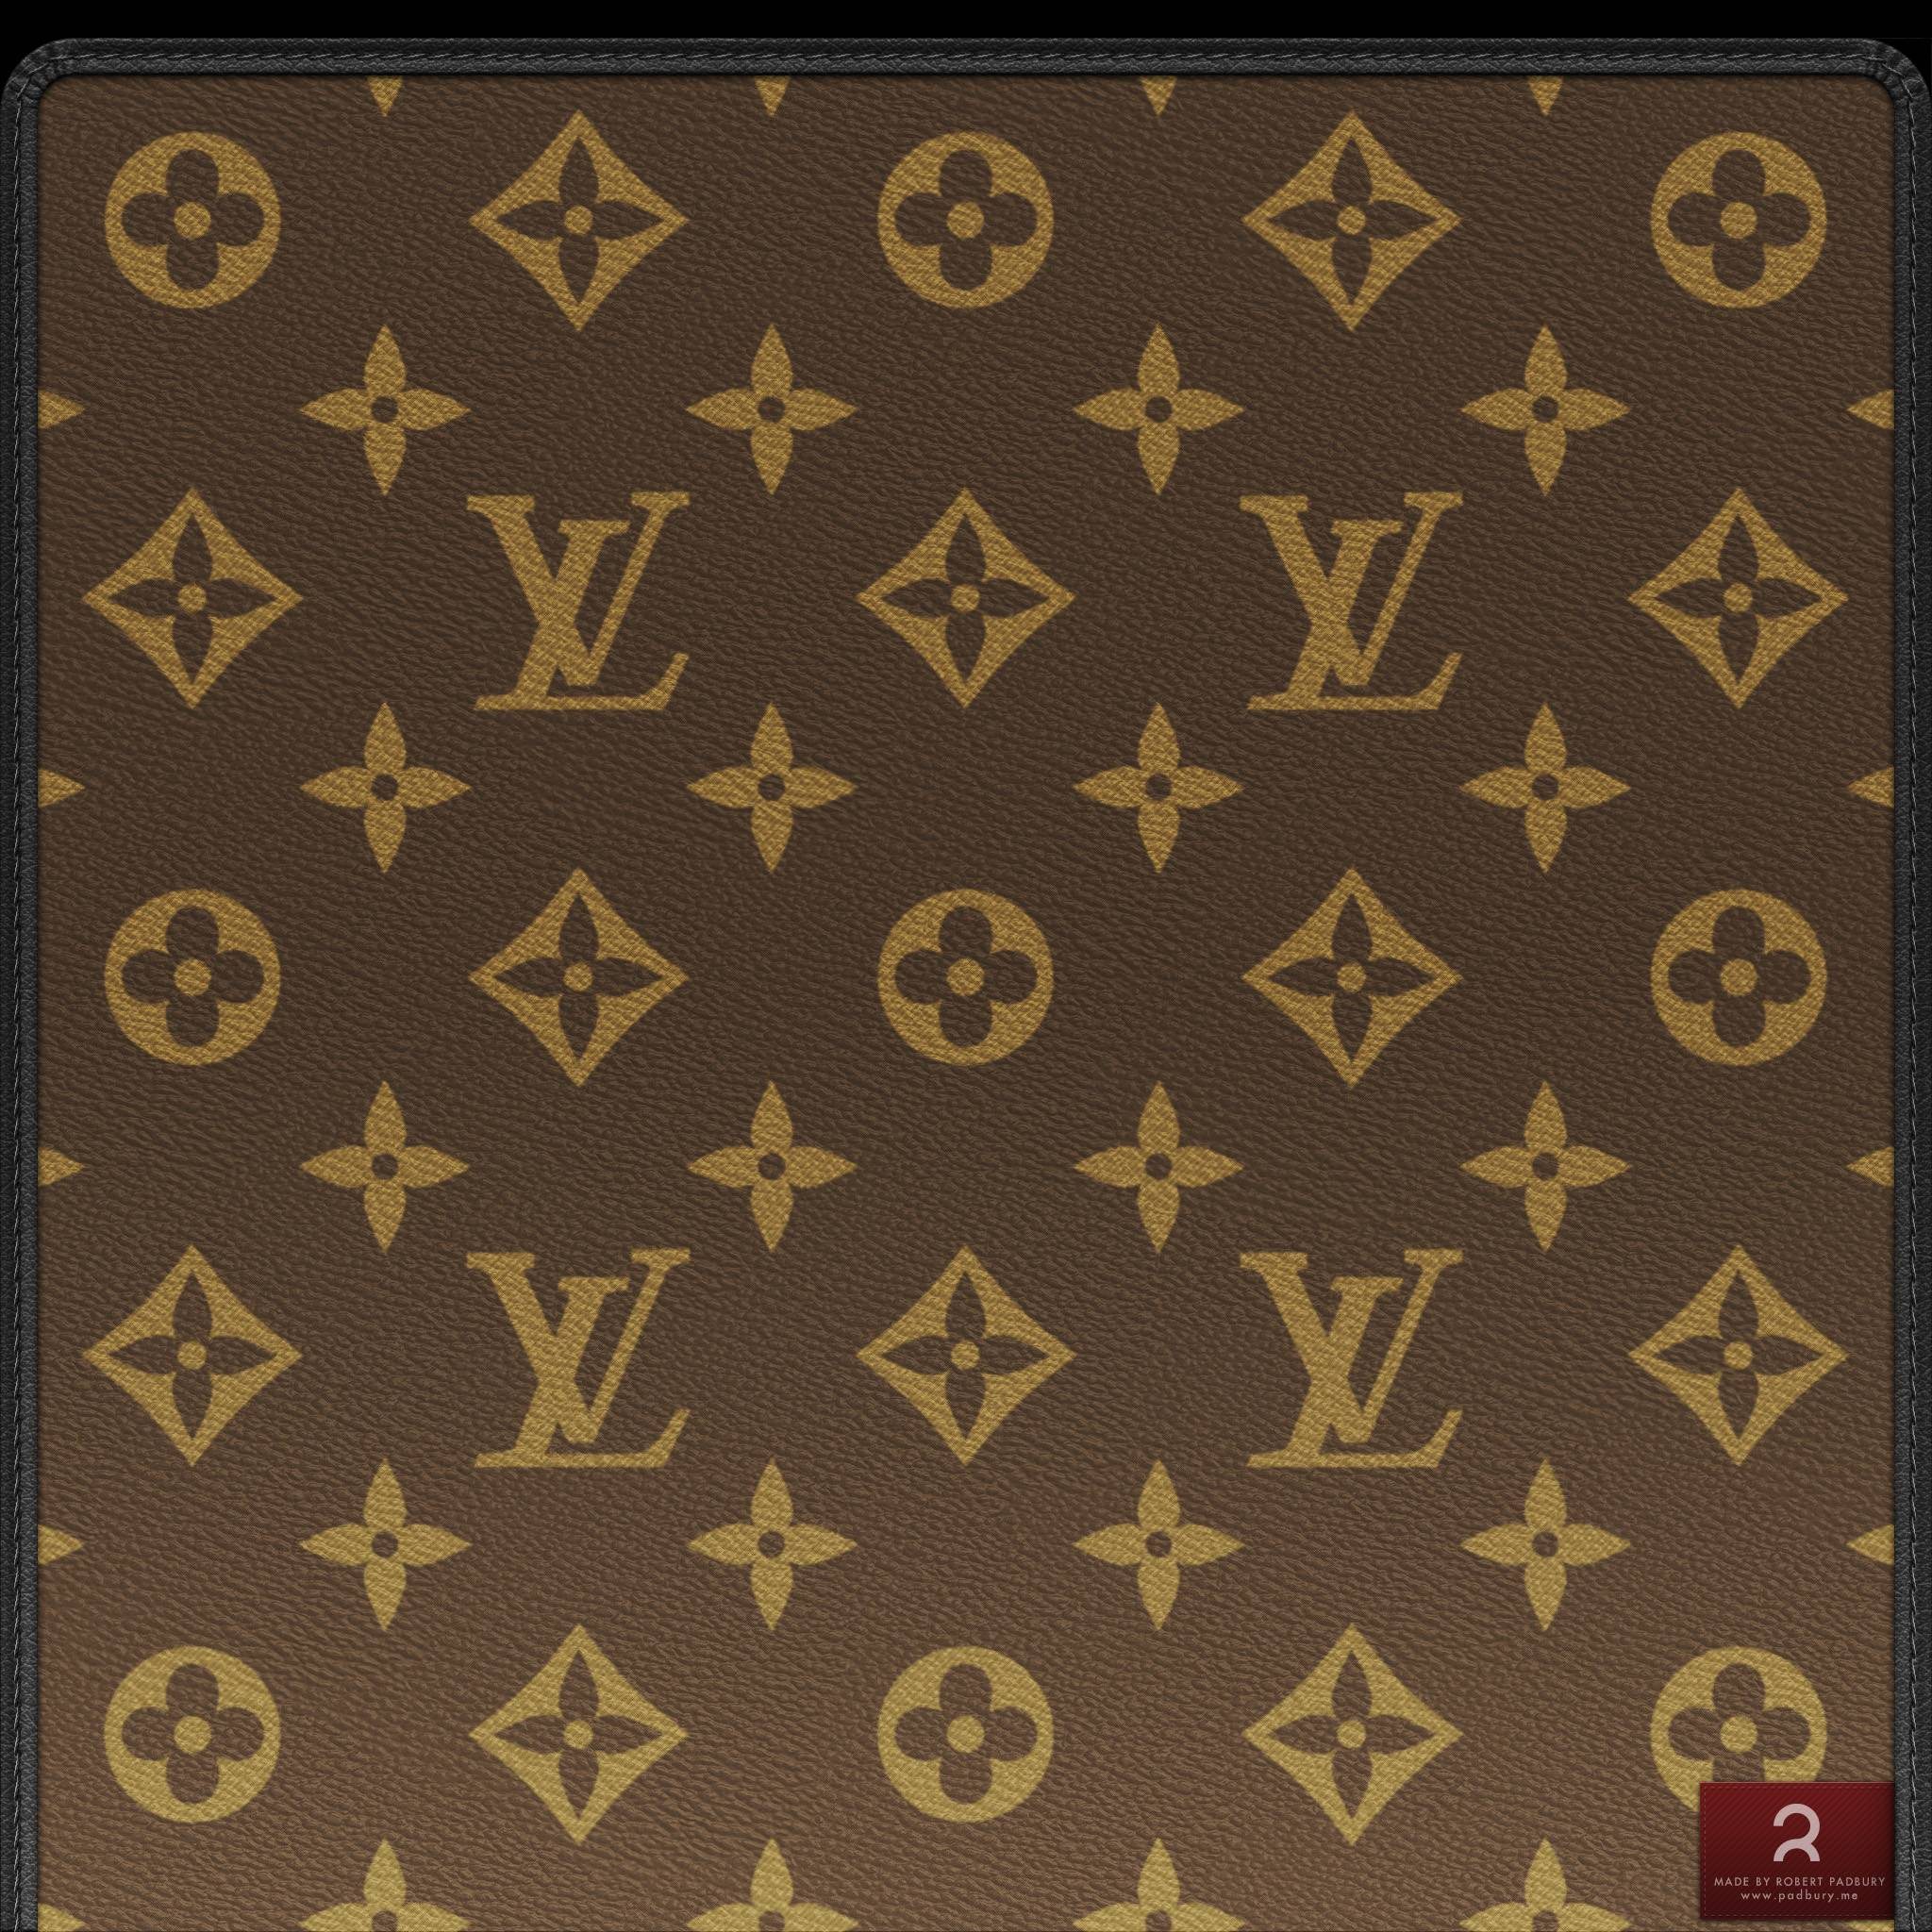 Dribbble - Louis Vuitton Retina Display Wallpaper Collection by ...